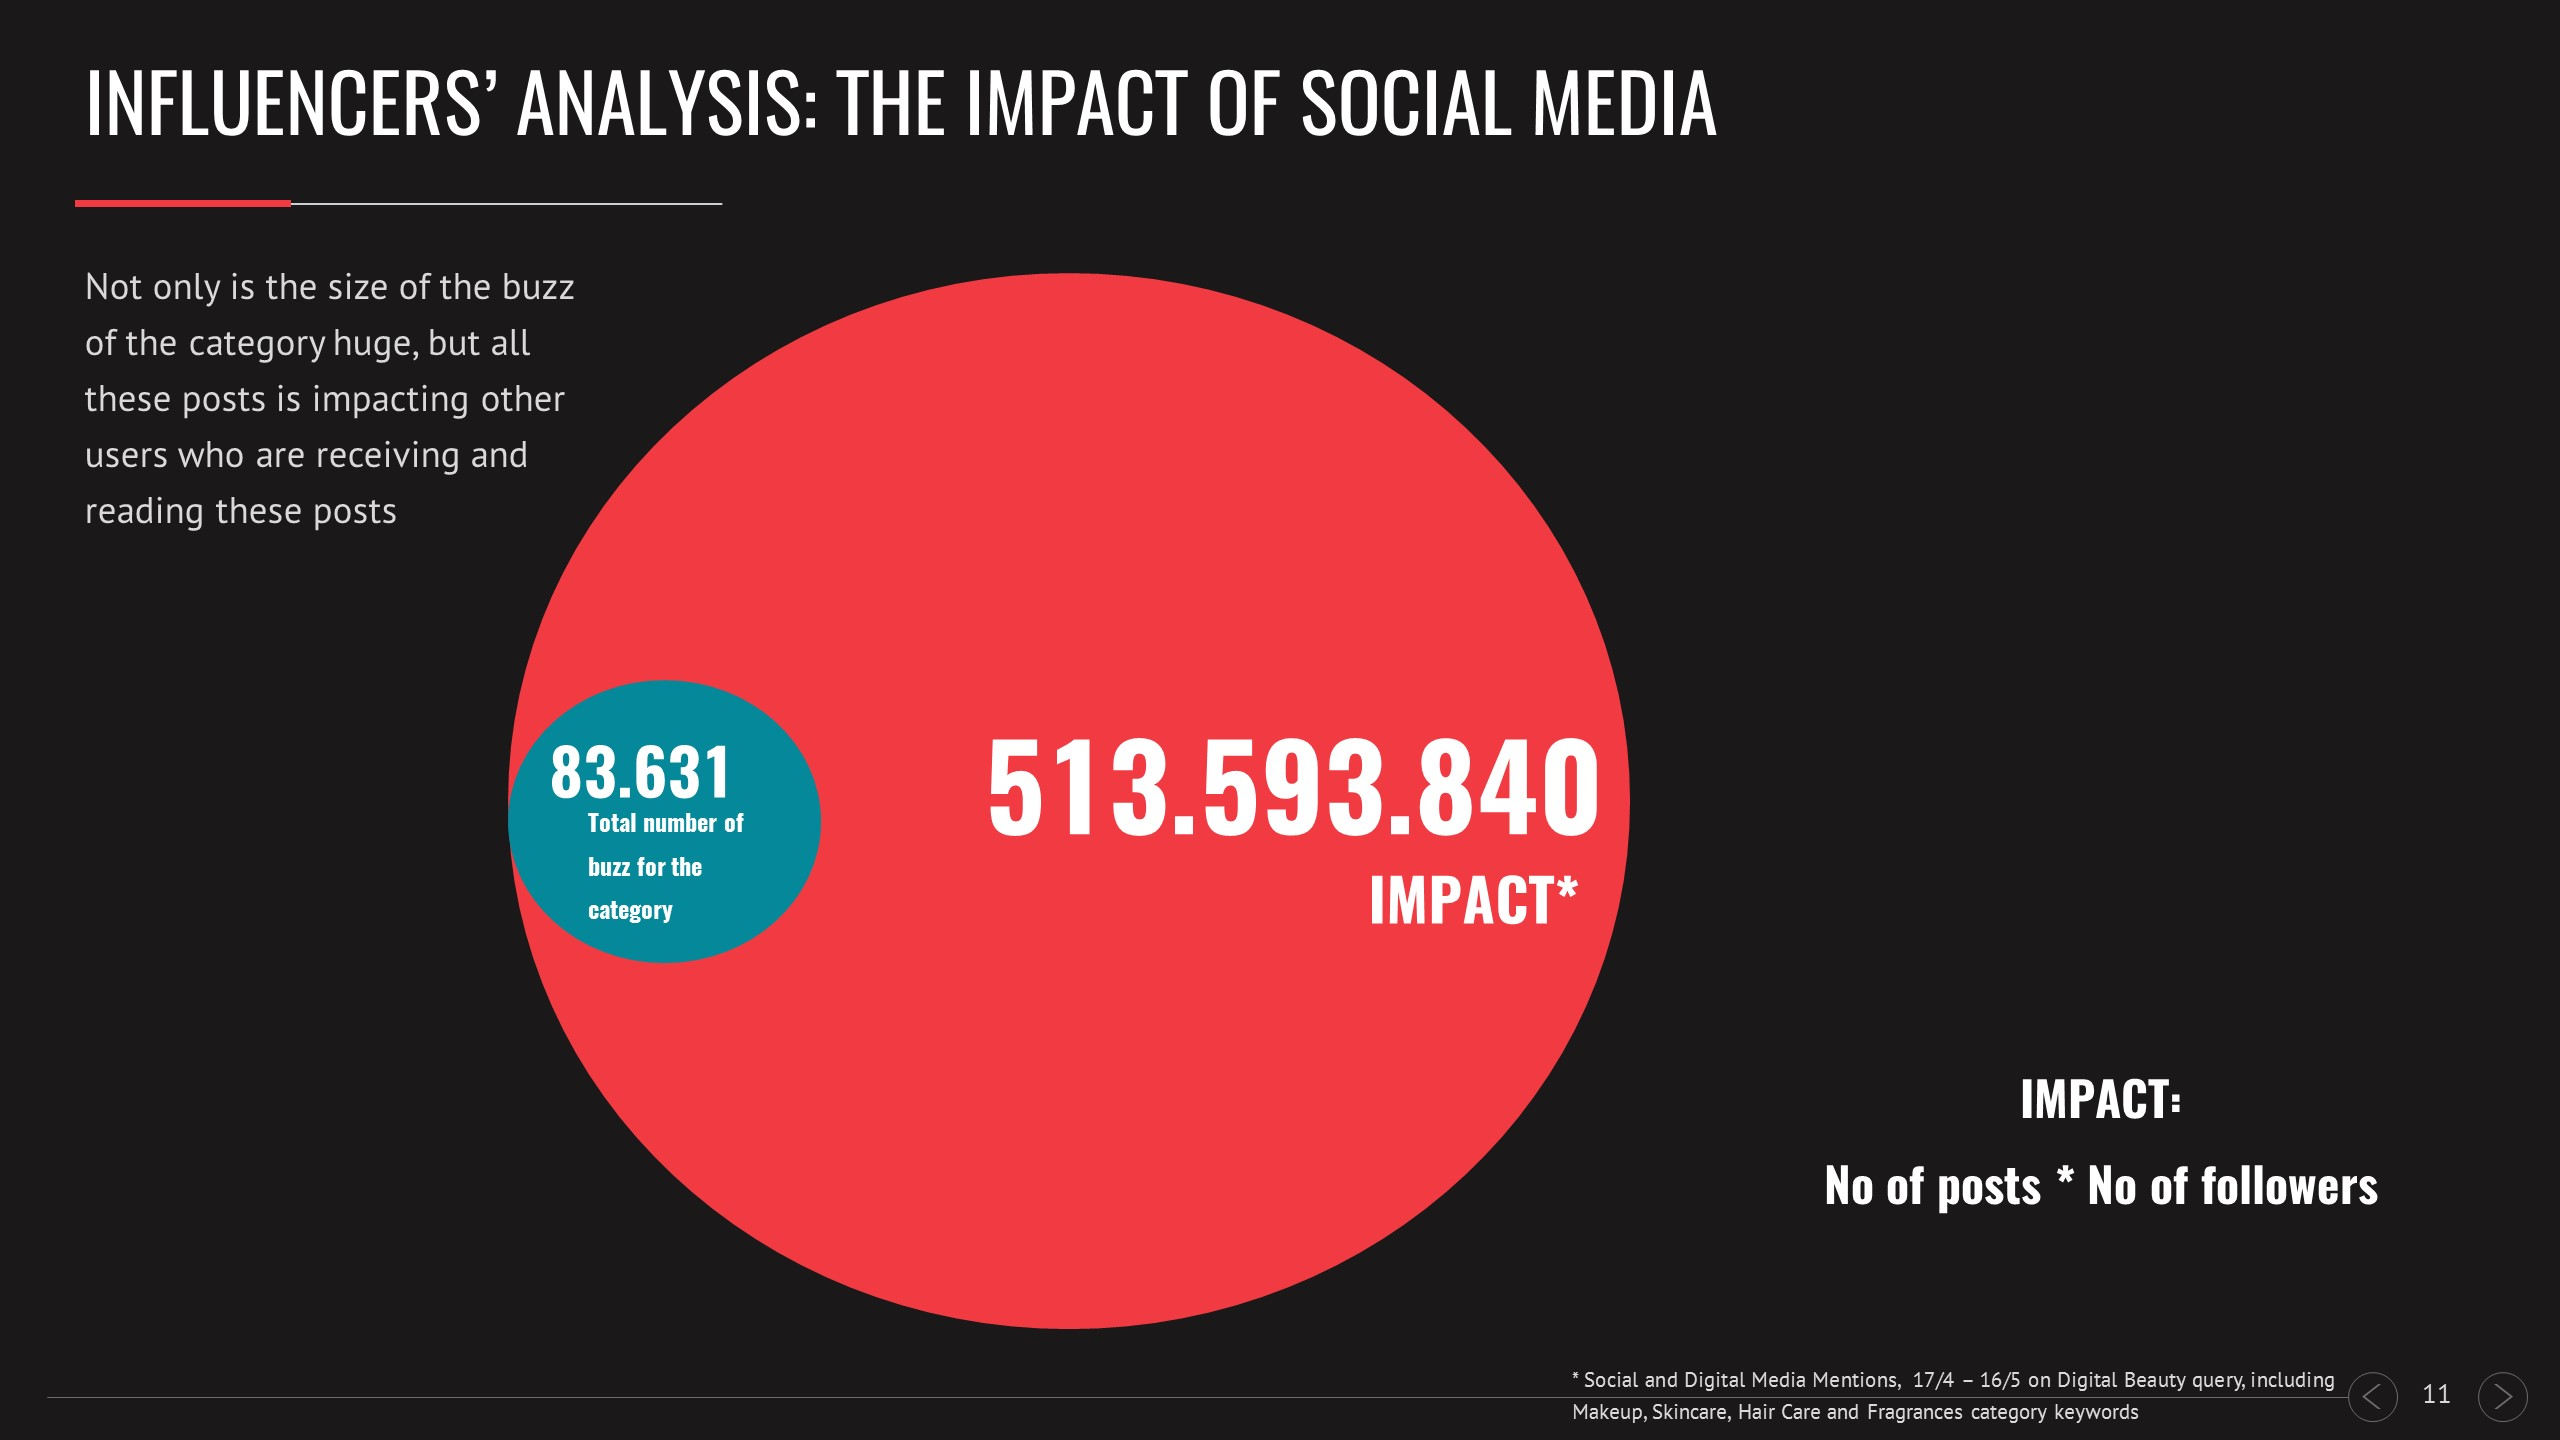 Influencers' analytics: the impact of social media